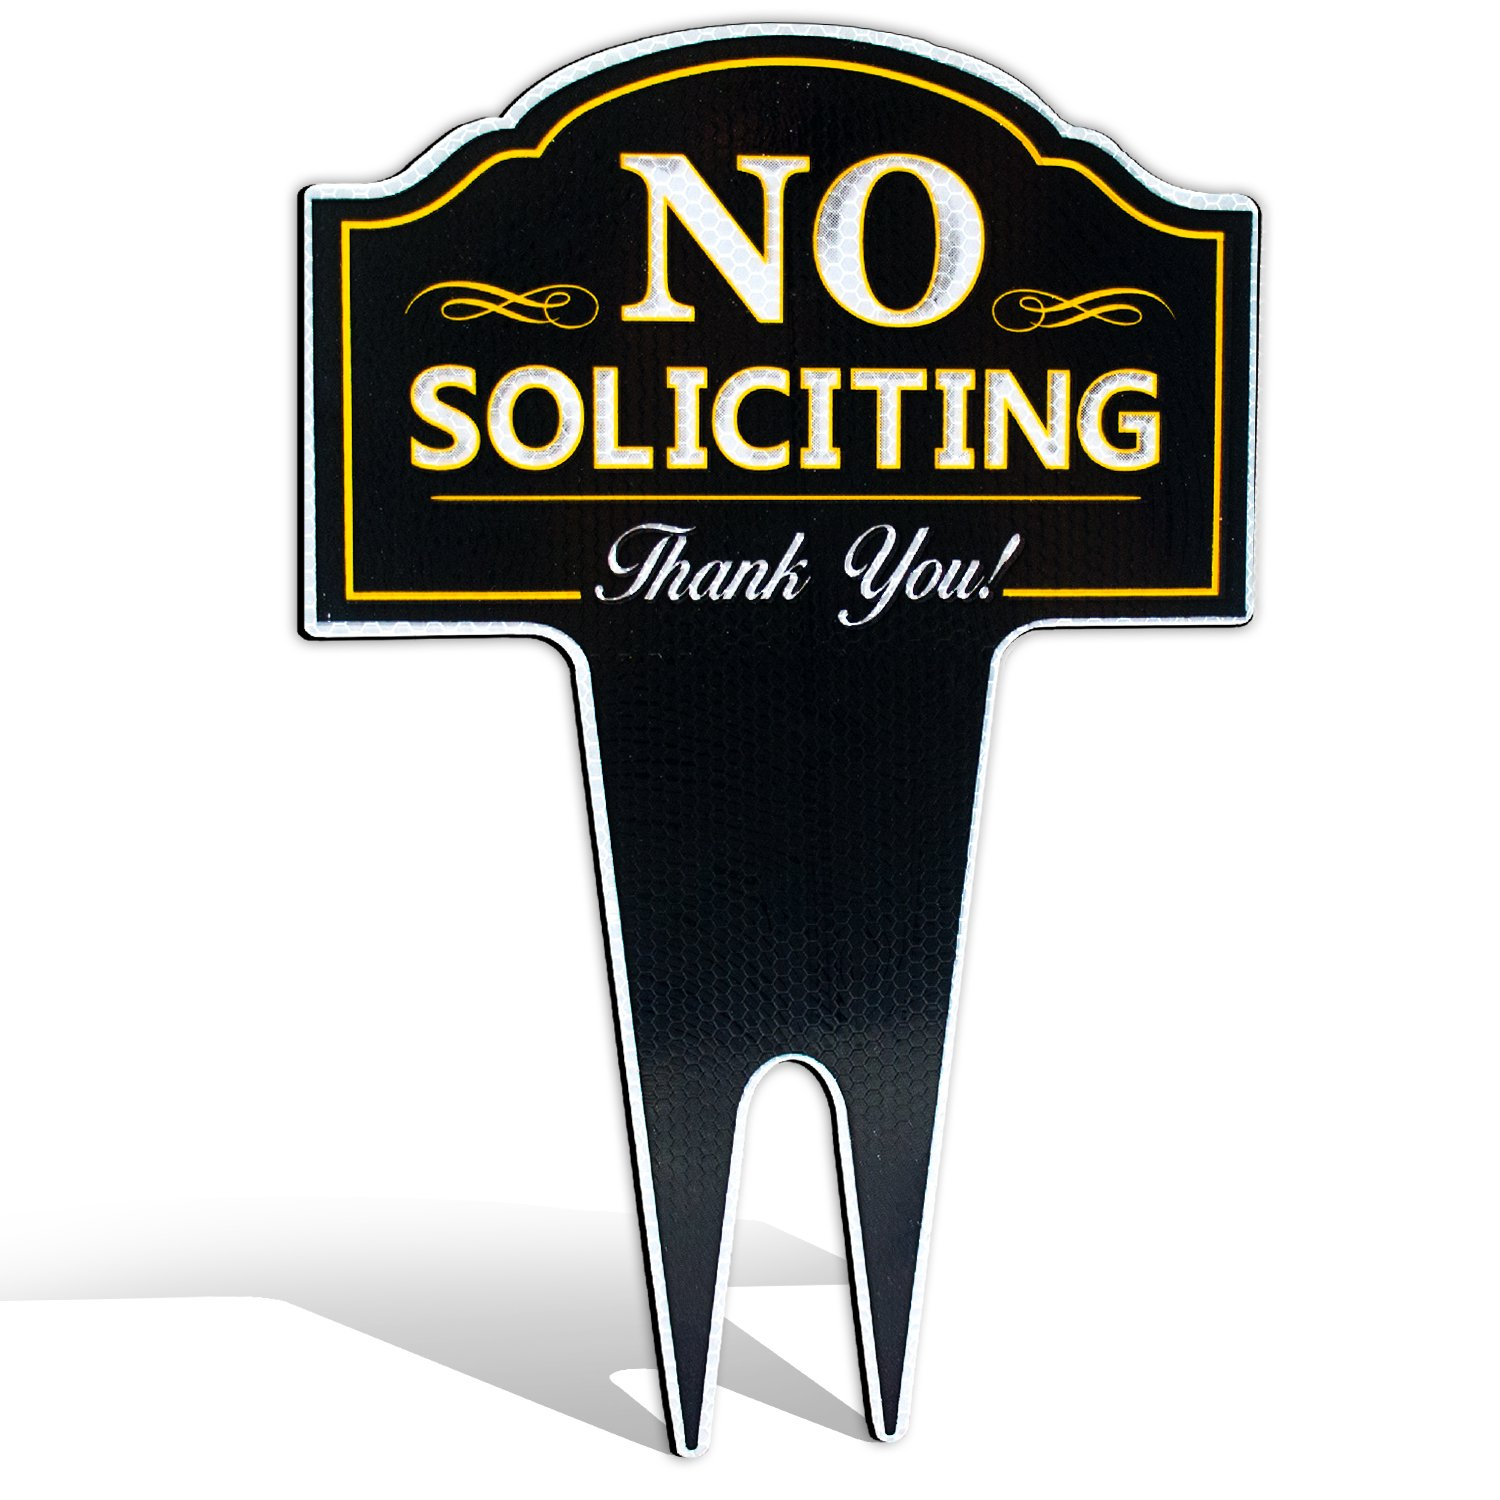 No Soliciting Outdoor Metal Yard Sign for Home, House and Business | Stylish Laser Cut | Made with Heavy Duty DiBond Aluminum (Reflective)